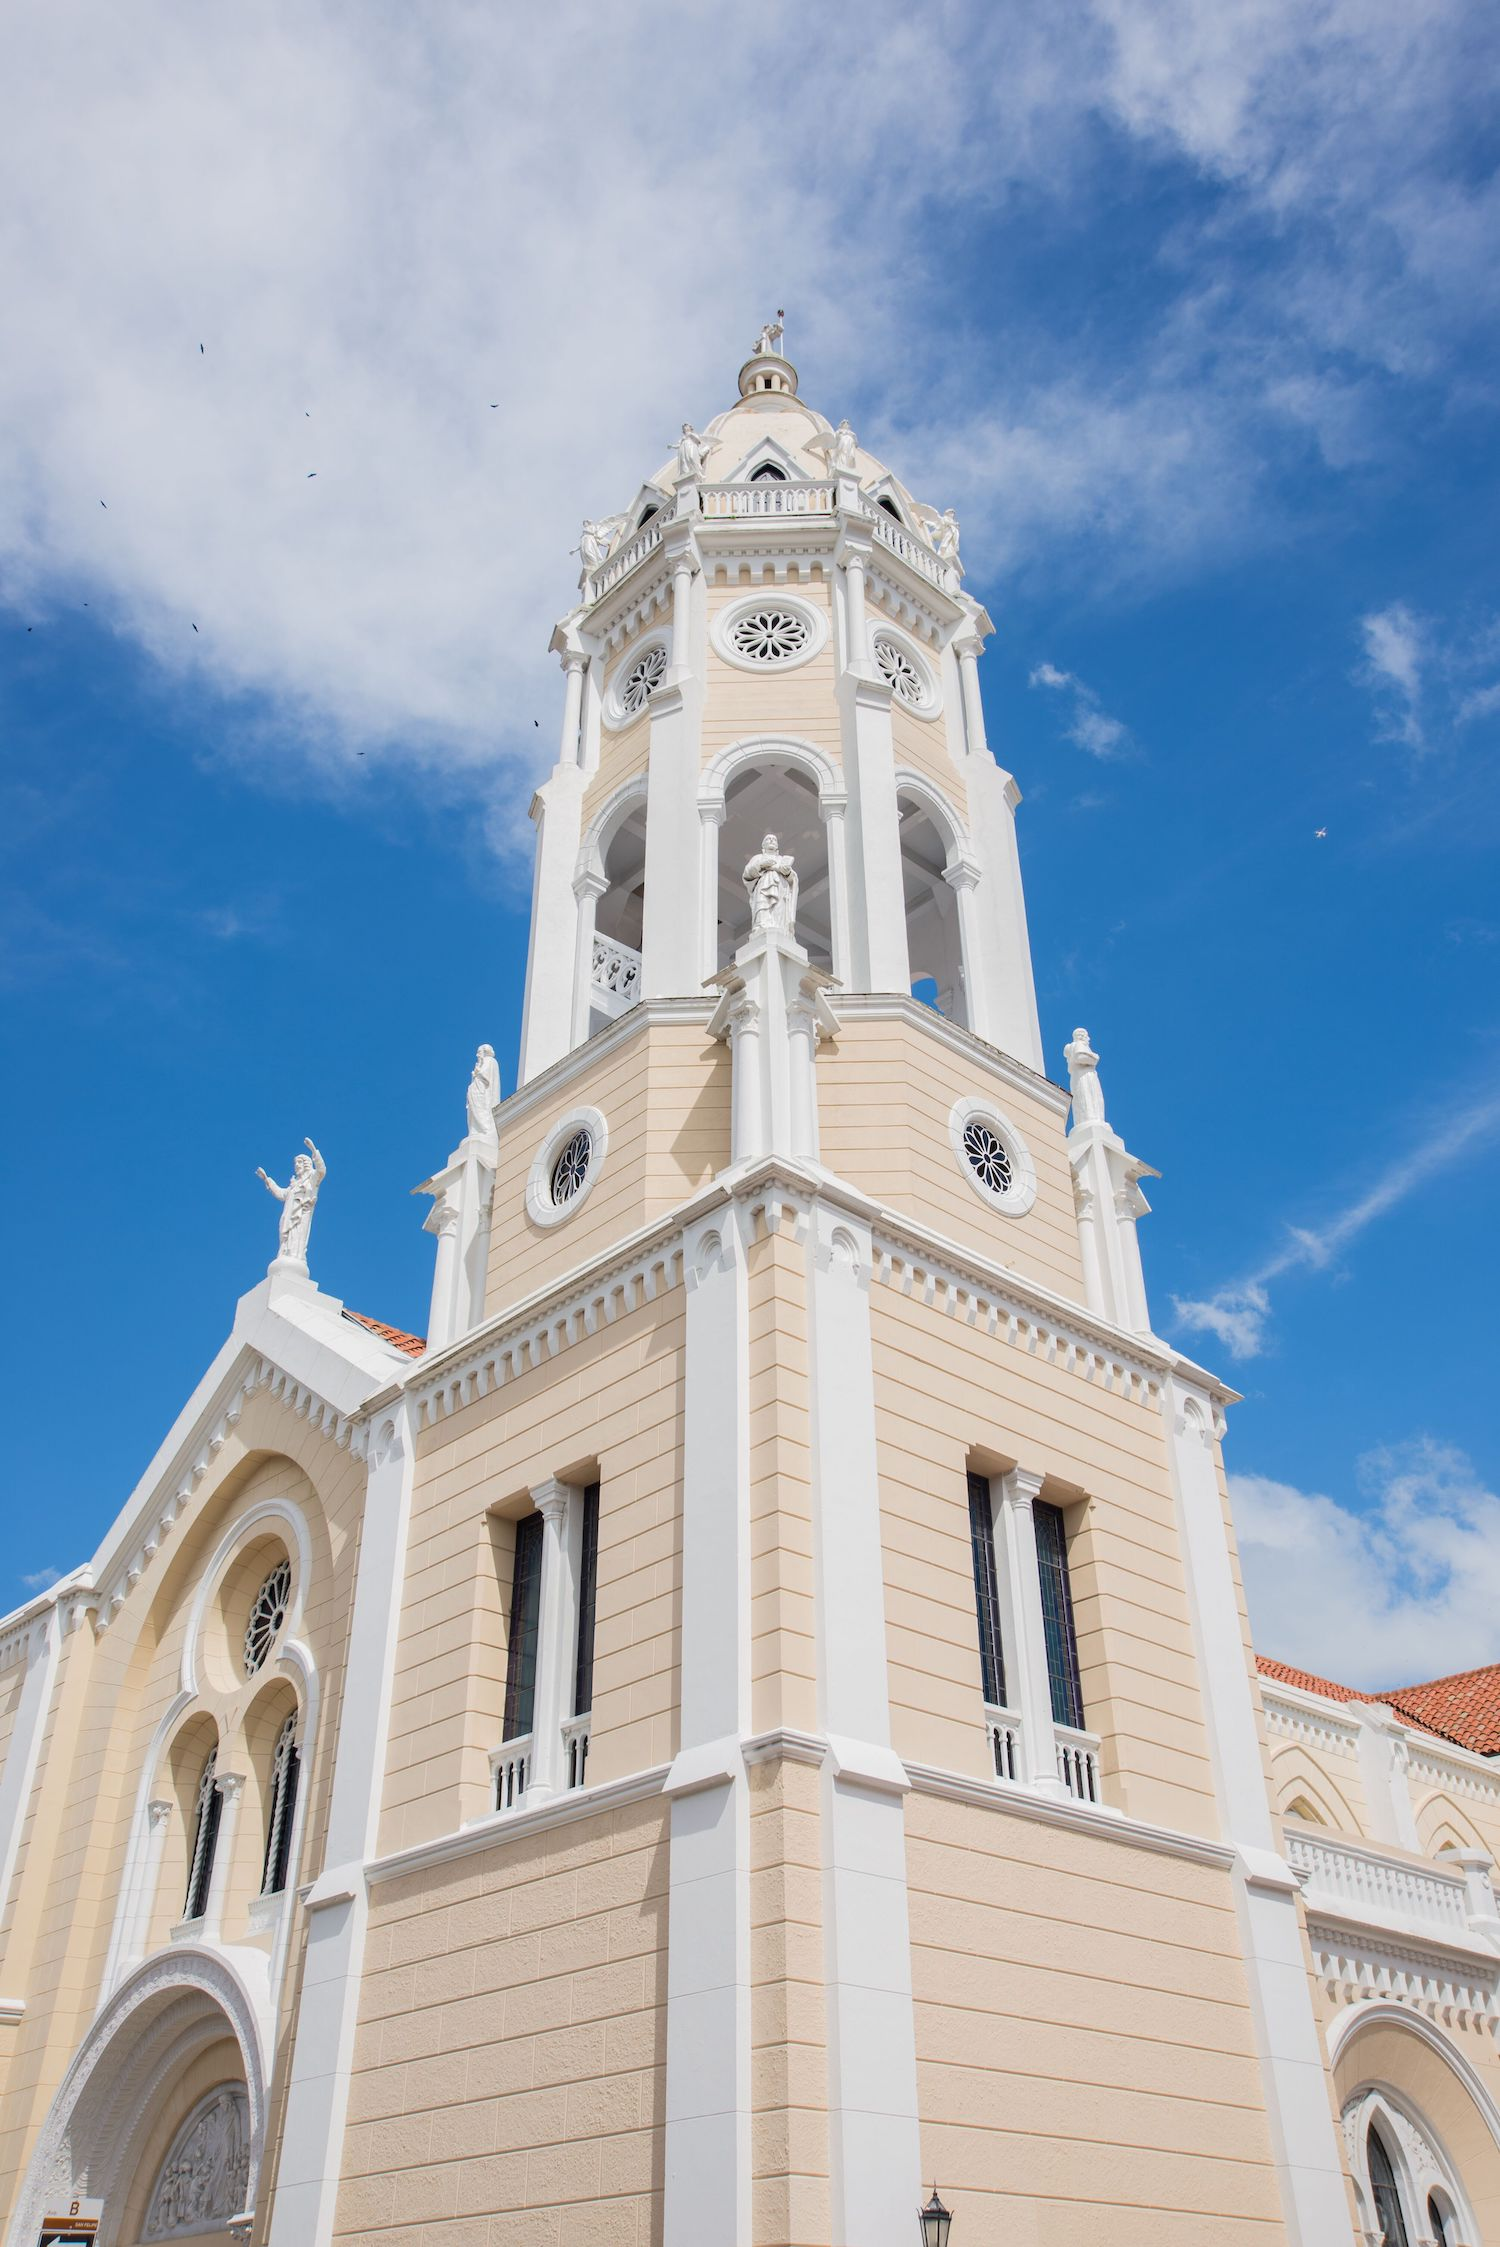 Saint Francis of Assisi Church, the highest point in Casco Viejo